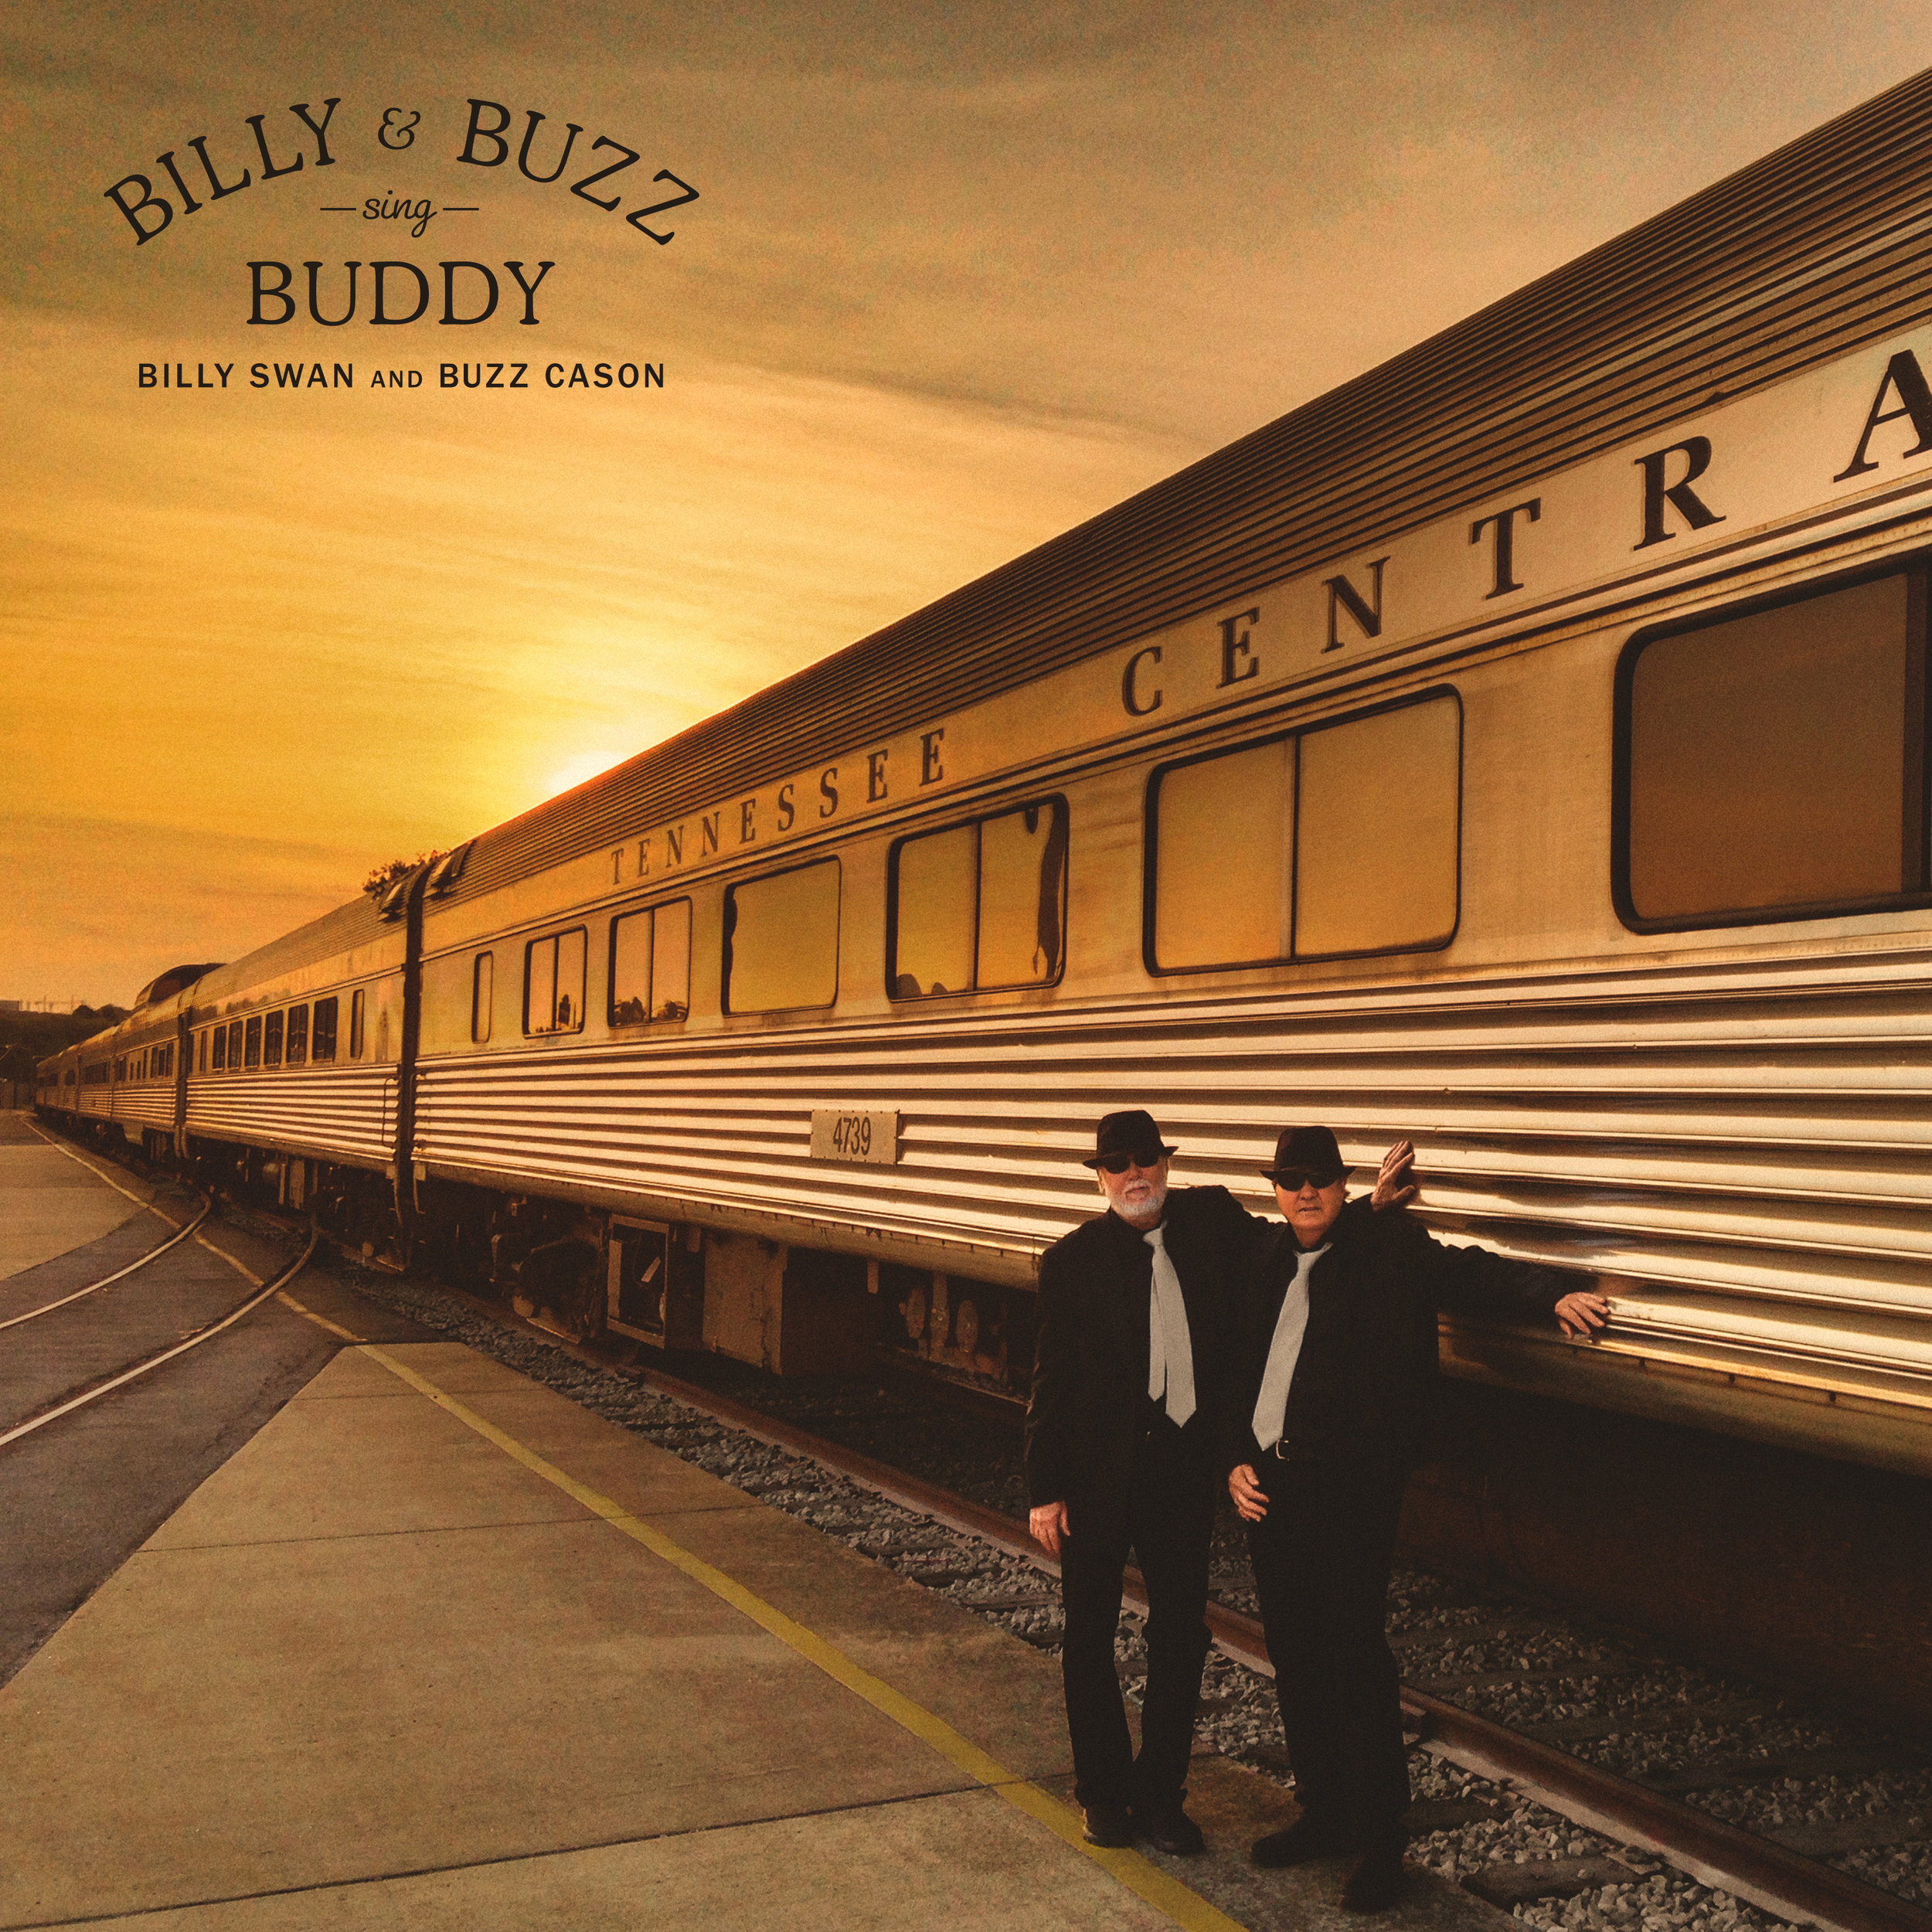 BillyBuzzSingBuddy_Cover.jpg